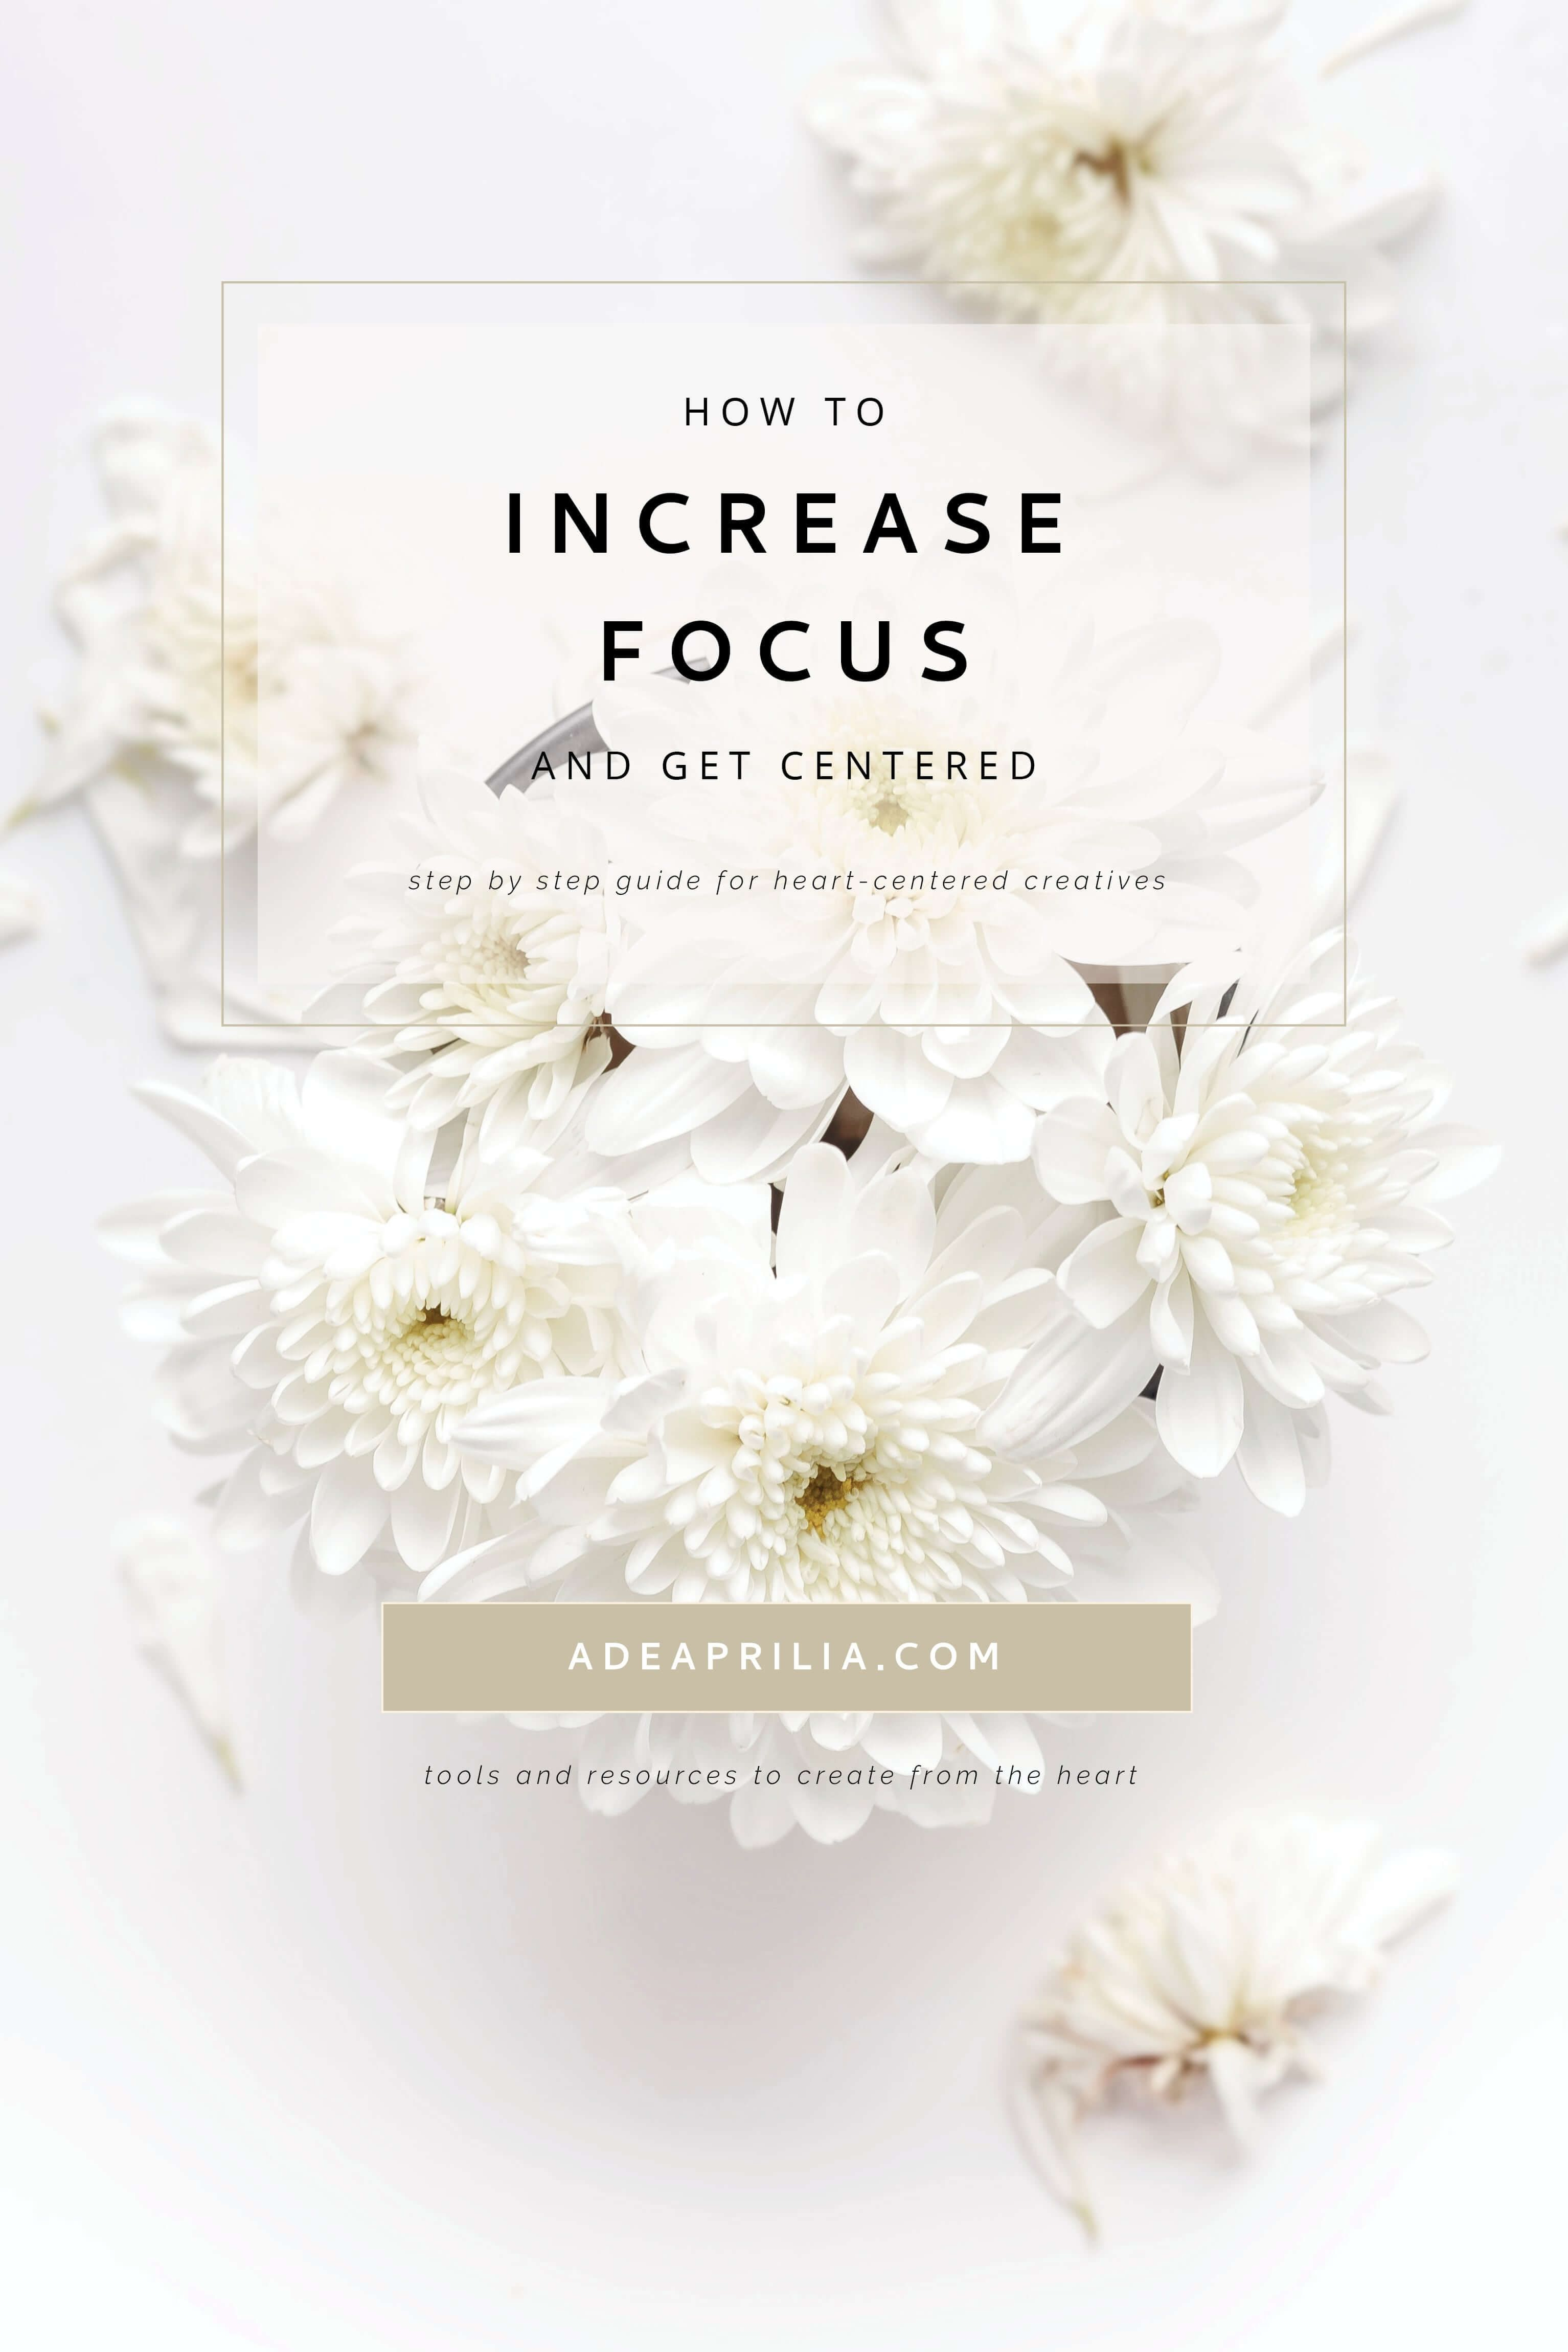 5 Ways To Increase Focus And Get Centered